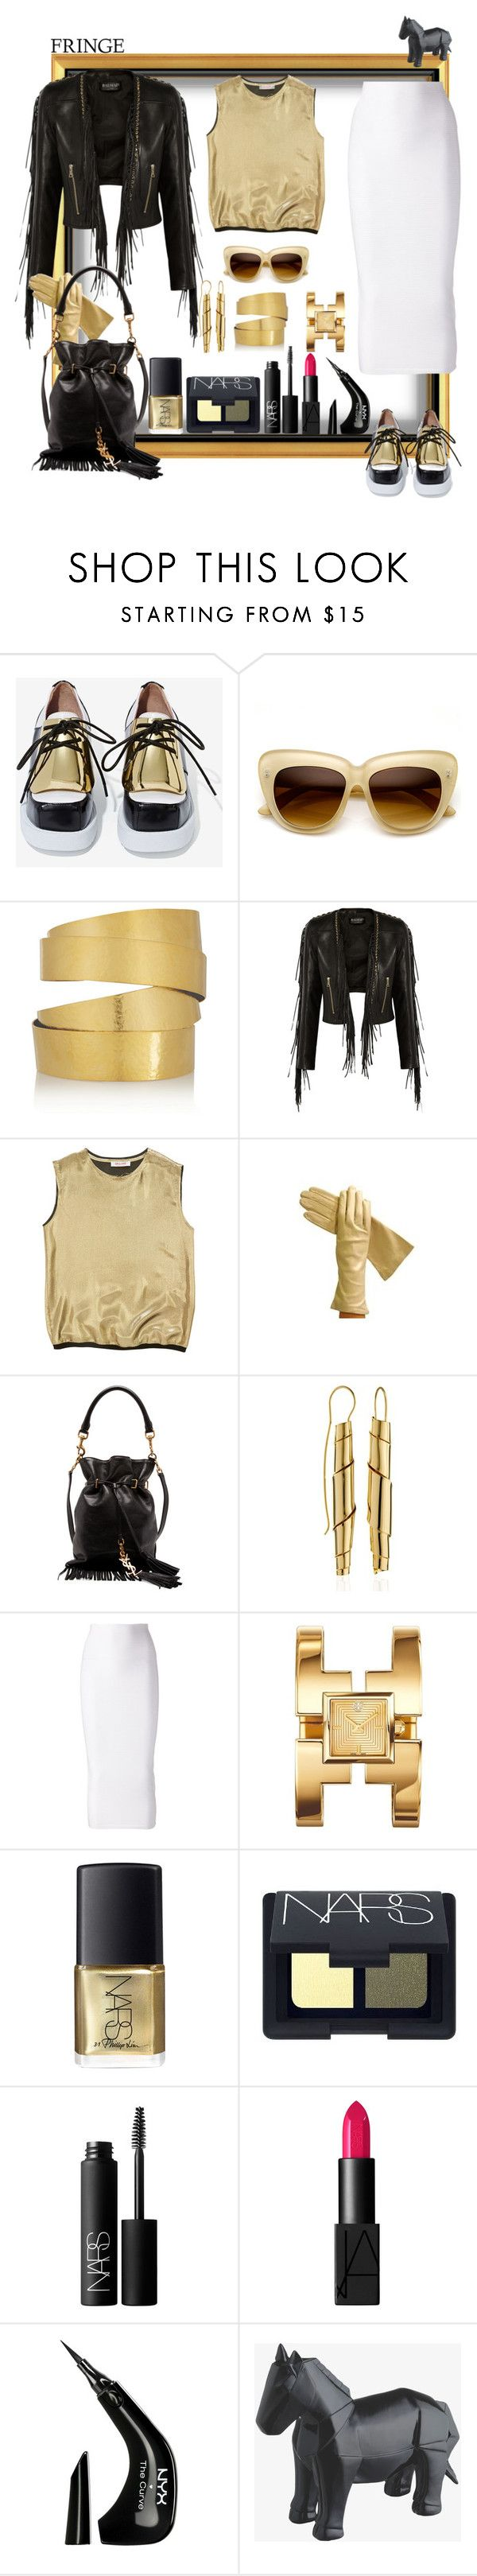 """""""Can you help me? It might be a bit difficult to get on the saddle!"""" by ritva-harjula ❤ liked on Polyvore featuring Jeffrey Campbell, Hervé Van Der Straeten, Balmain, Organic by John Patrick, Yves Saint Laurent, Oblik Atelier, Cushnie Et Ochs, Tory Burch, NARS Cosmetics and NYX"""